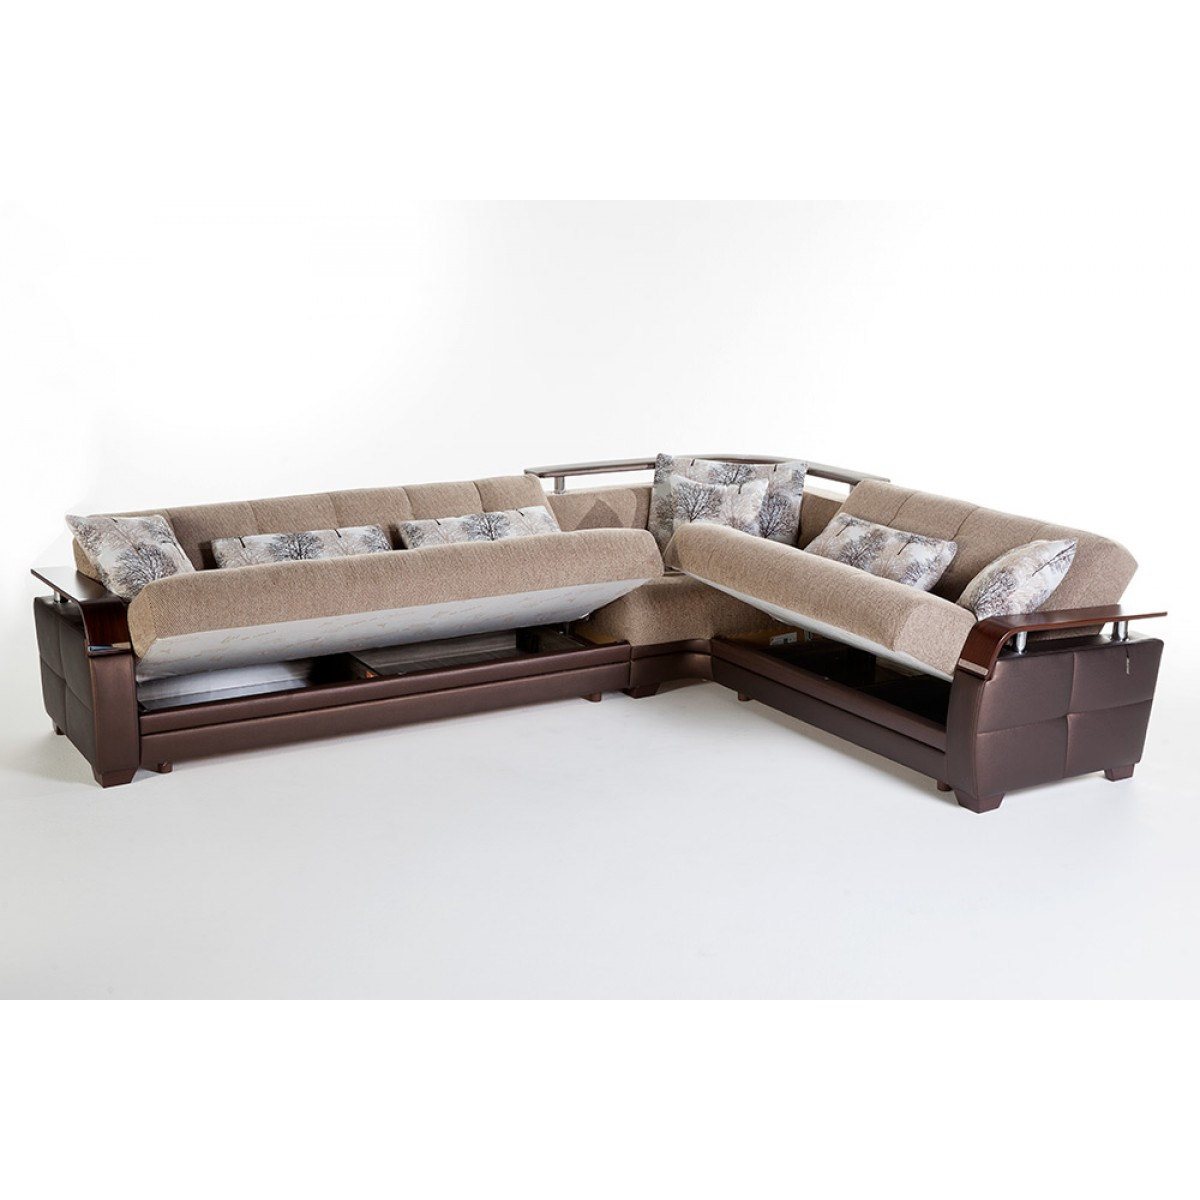 Modern Convertible Sofa Sectional w/ Storage Underneath